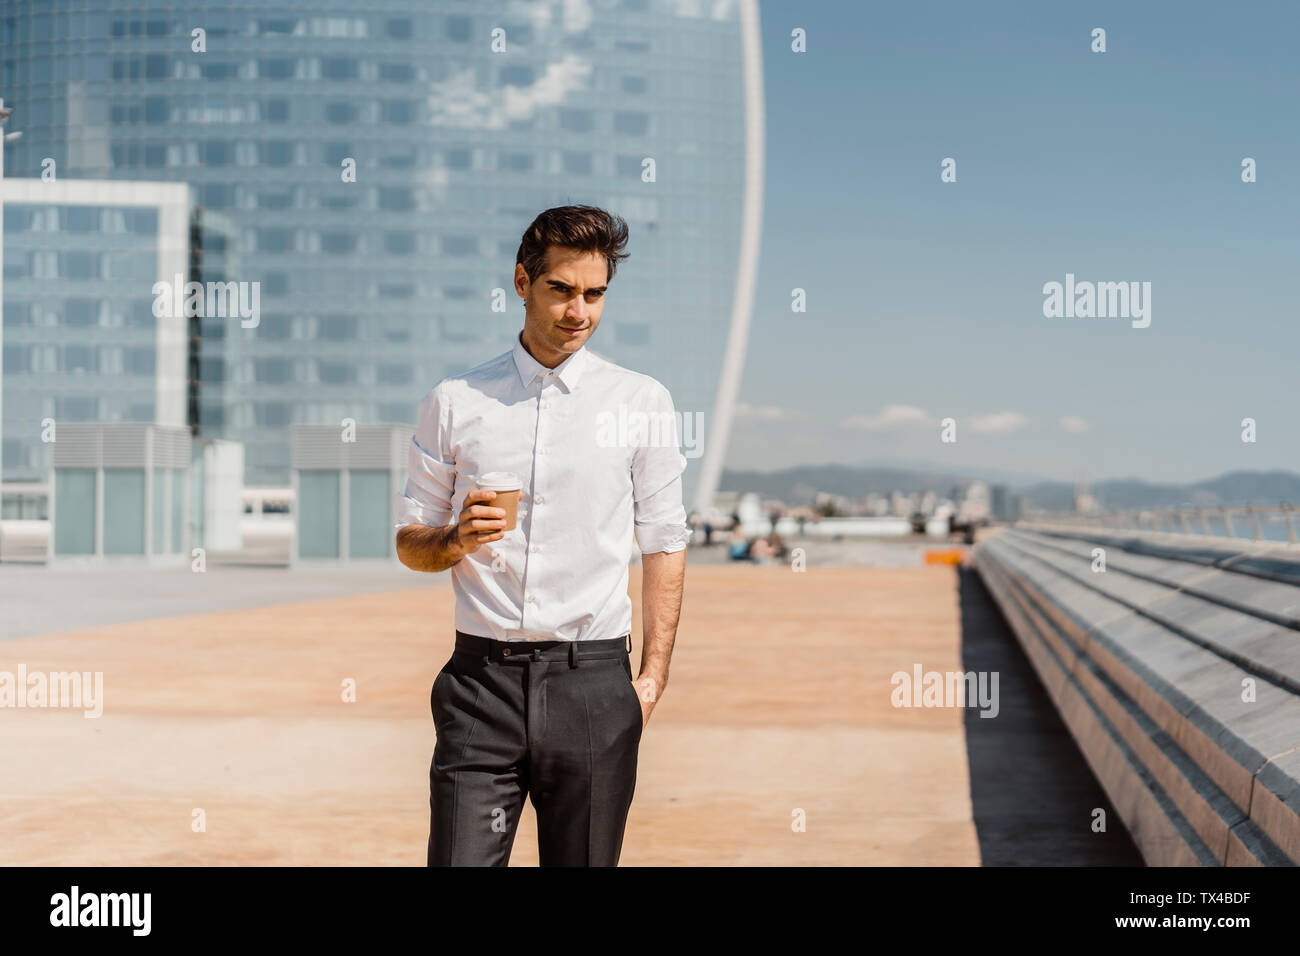 Portrait of businessman with takeaway coffee in the city - Stock Image